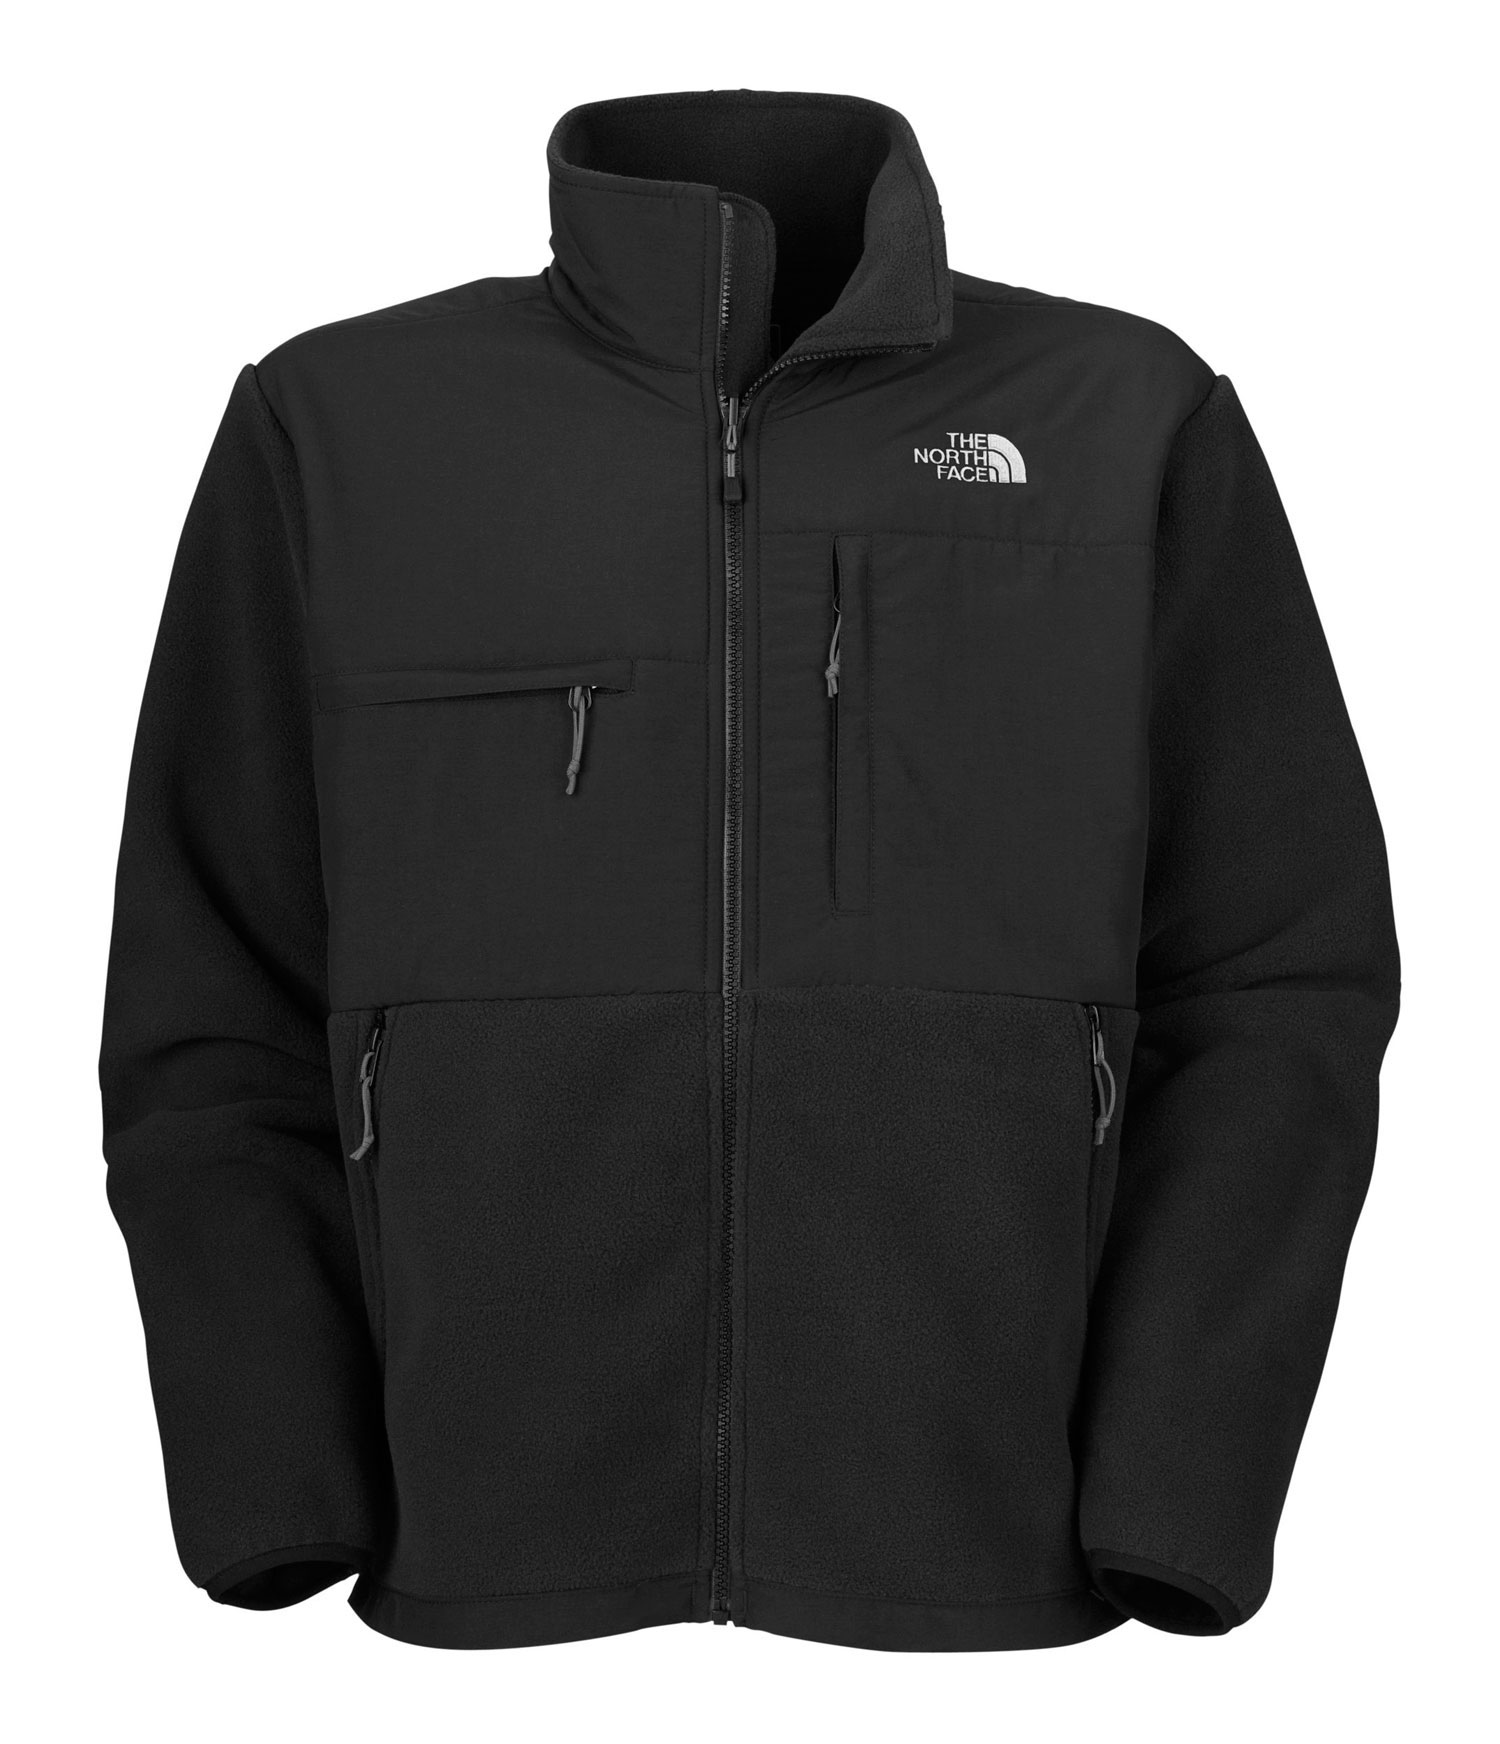 "A 100% windproof fleece gives this already comfortable and durable jacket ultimate protection from winter weather. * Avg Weight: 842 g (29.7 oz) * Center Back: 28"" * Fabric: body: recycled Polartec 300 Series fleece with DWR (bluesign approved fabric) * abrasion: laundered two-ply nylon (bluesign approved fabric) * Standard fit * Zip-in compatible * Abrasion-reinforced shoulders and elbows * Napoleon chest pocket * Horizontal chest pocket * Two hand pockets * Elastic- bound cuffs * Pit-zip vents * Hem cinch-cord * Fixed hood * 3XL TNF Black and R Charcoal Grey Heather only - $178.95"